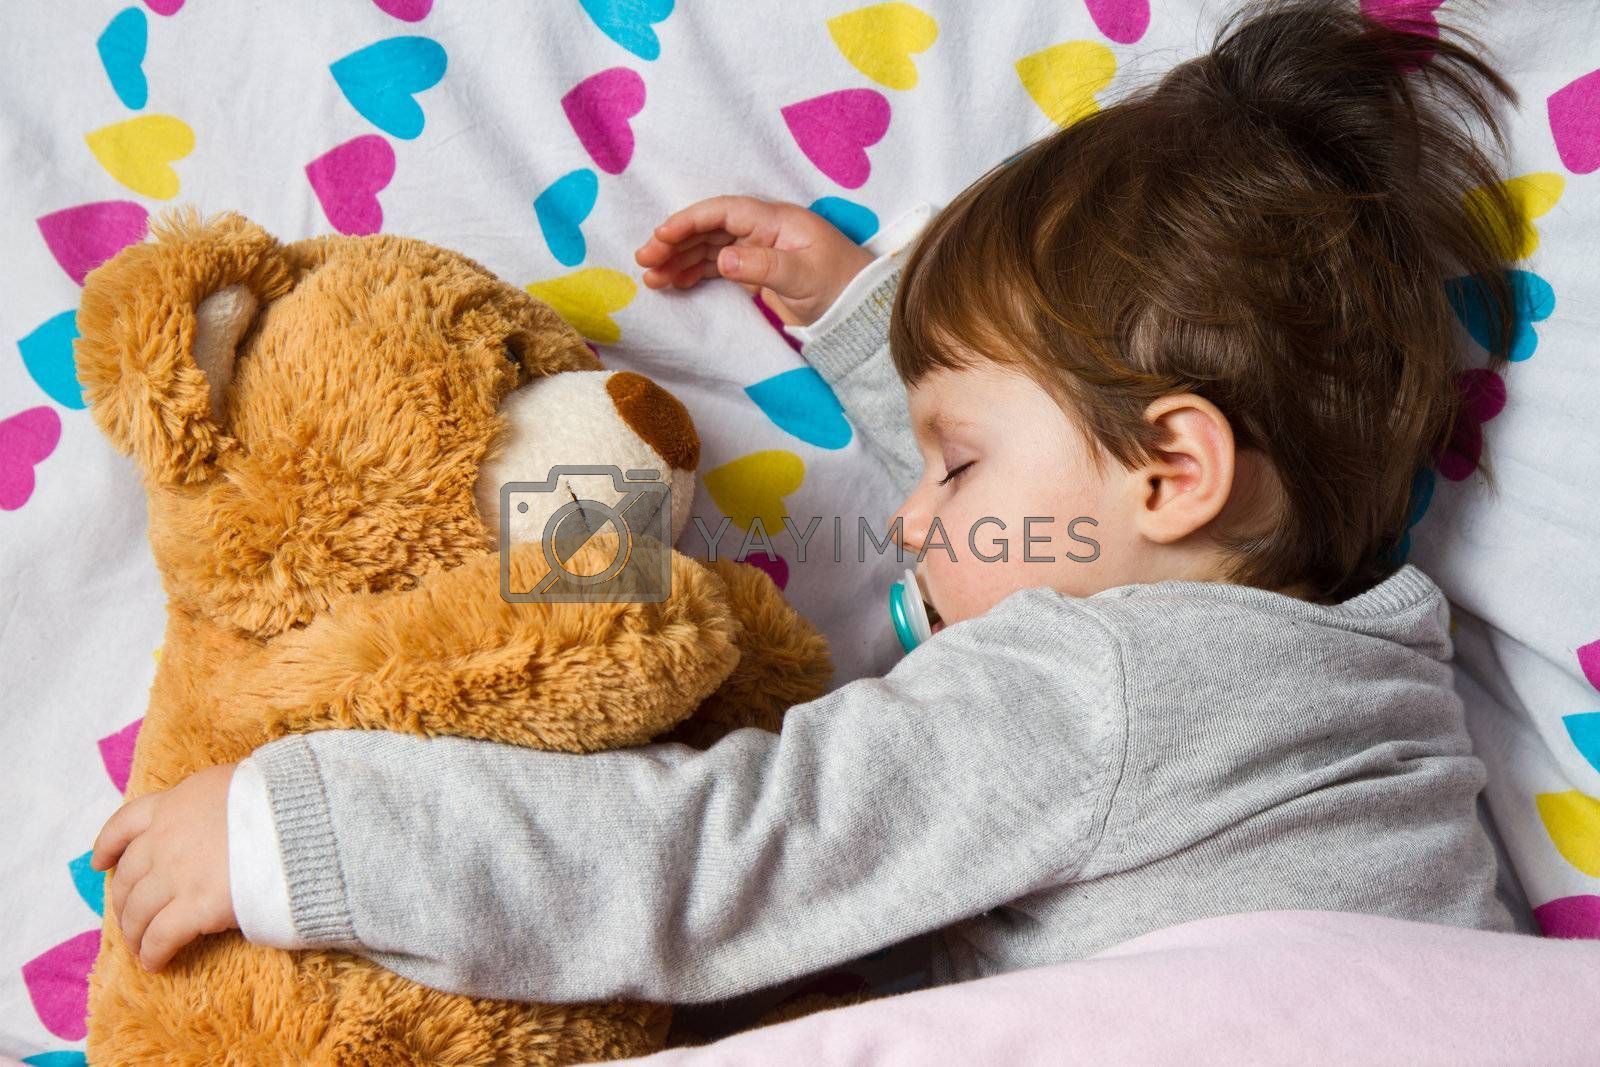 Royalty free image of Sweet child sleeping with teddy bear  by lsantilli